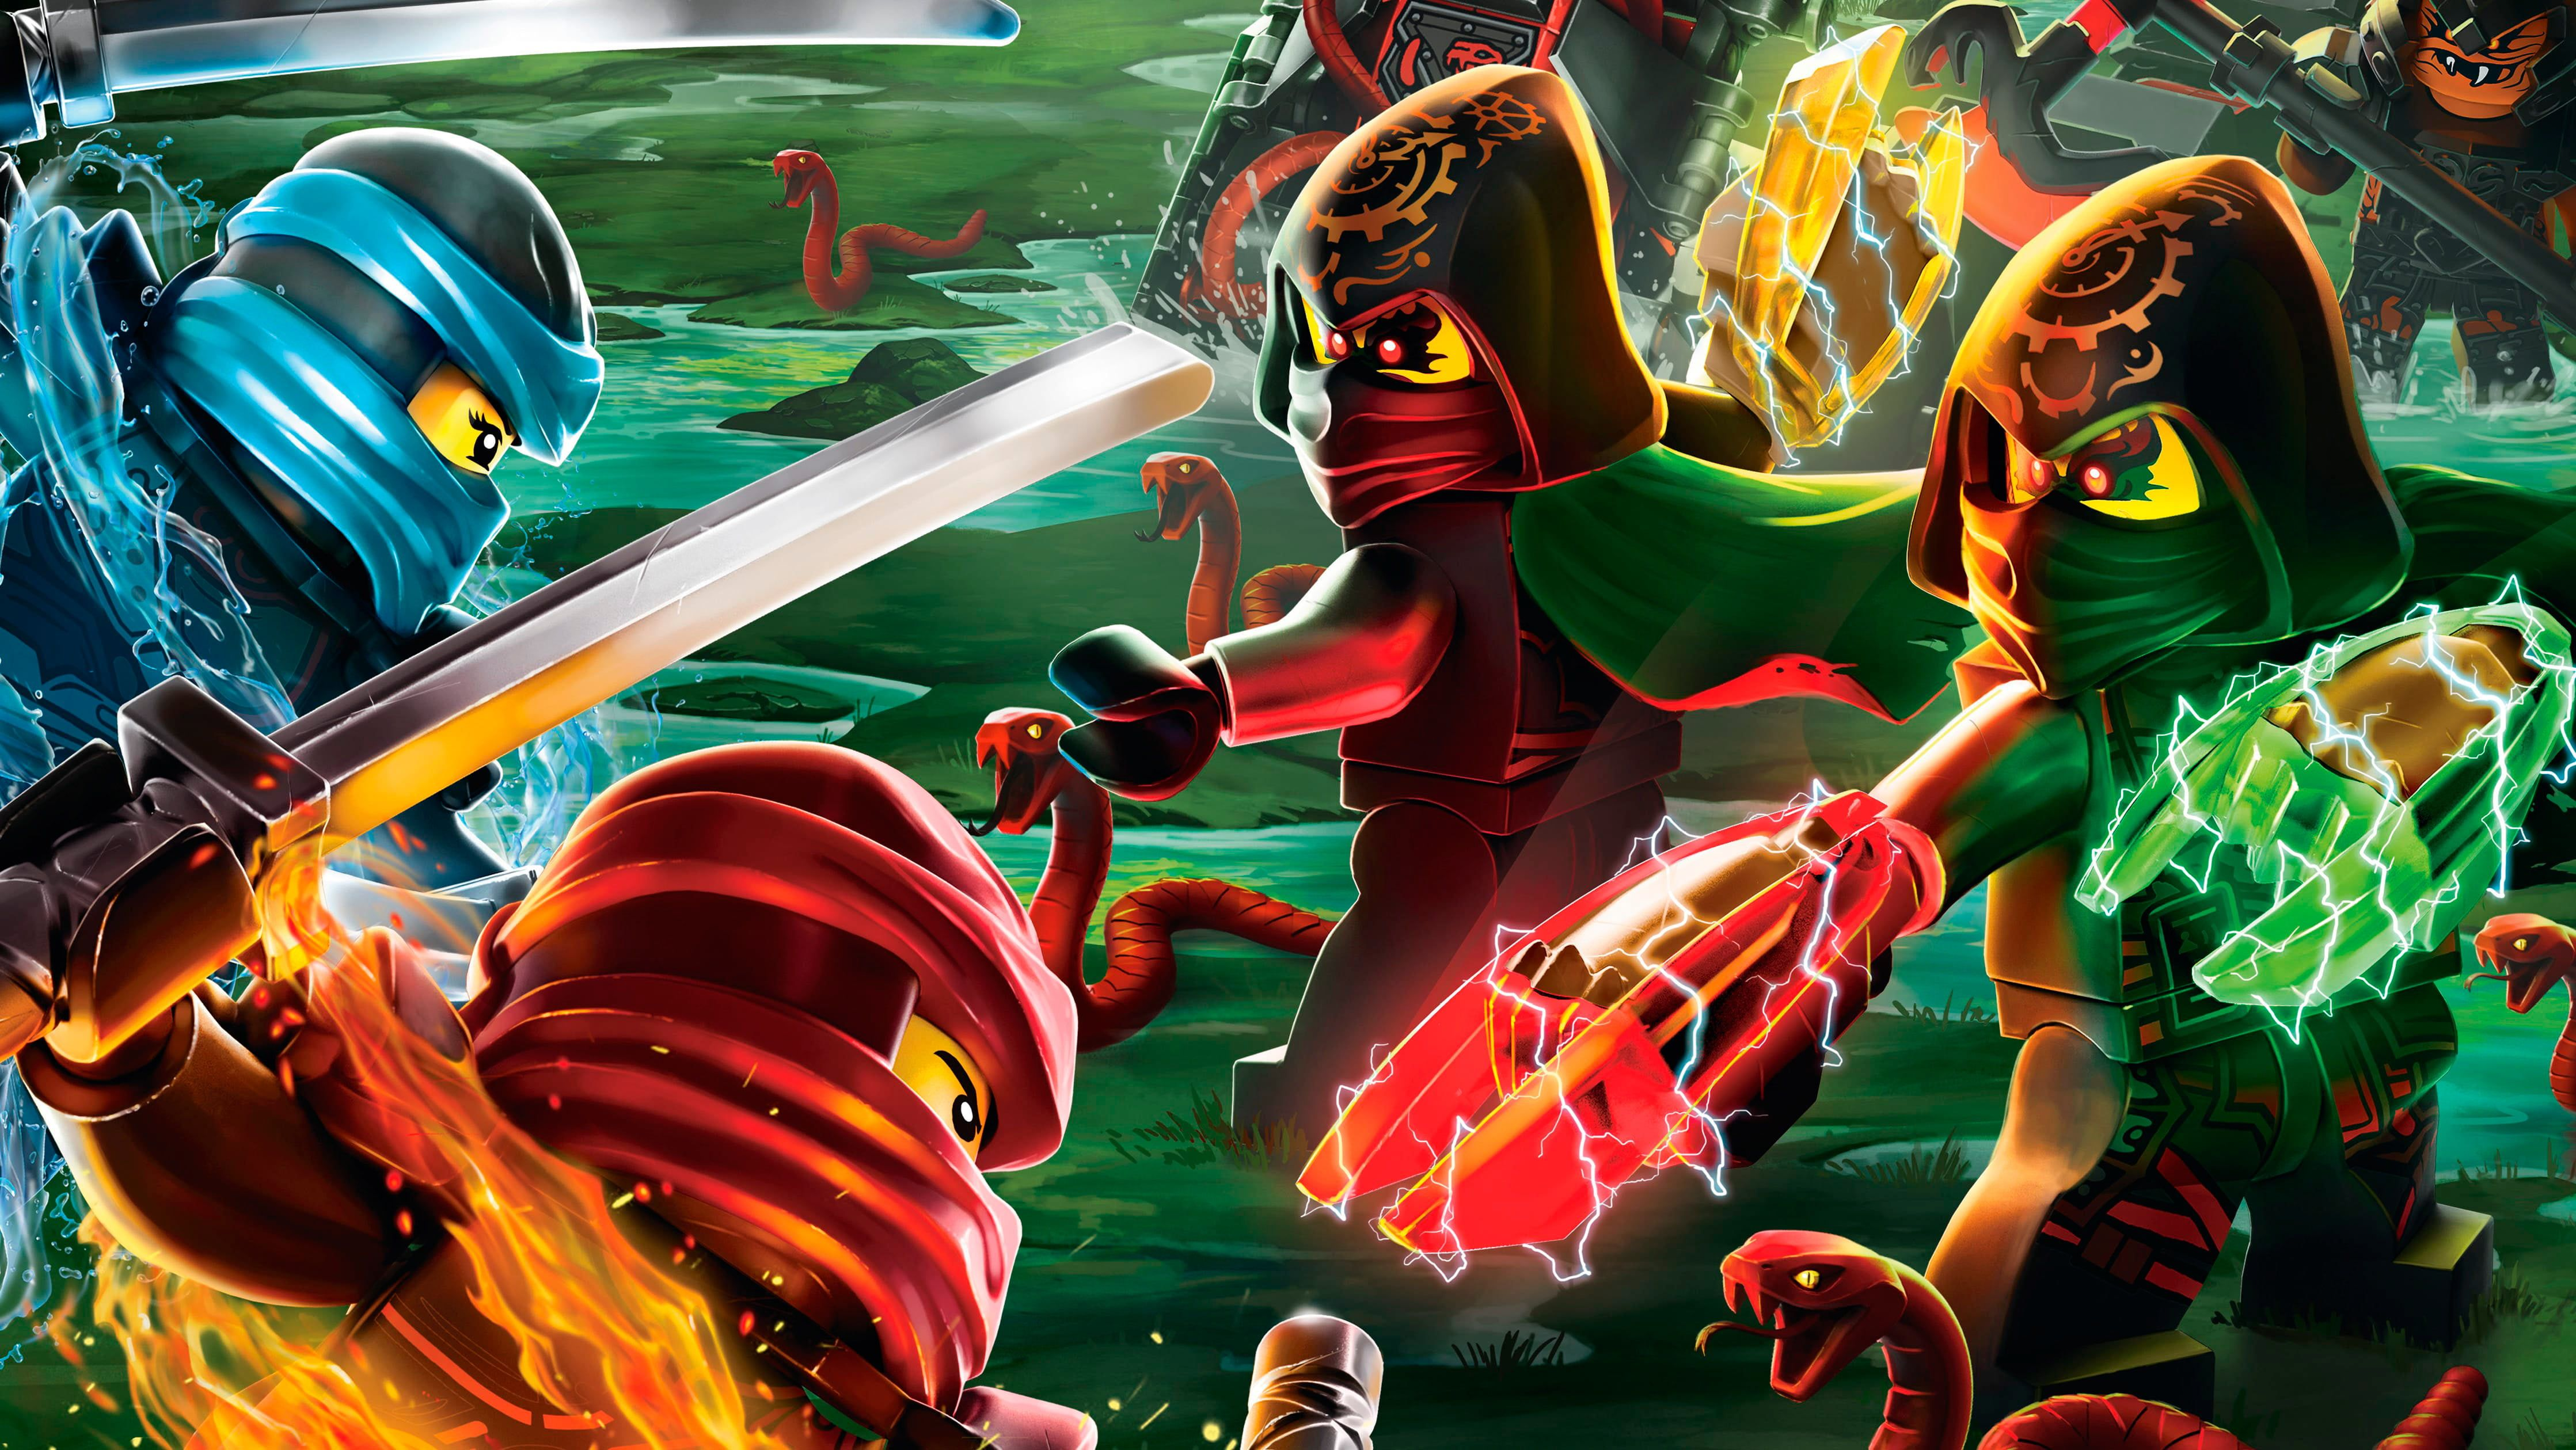 4474x2519 LEGO Ninjago wallpaper HD wallpaper | Wallpaper Flare